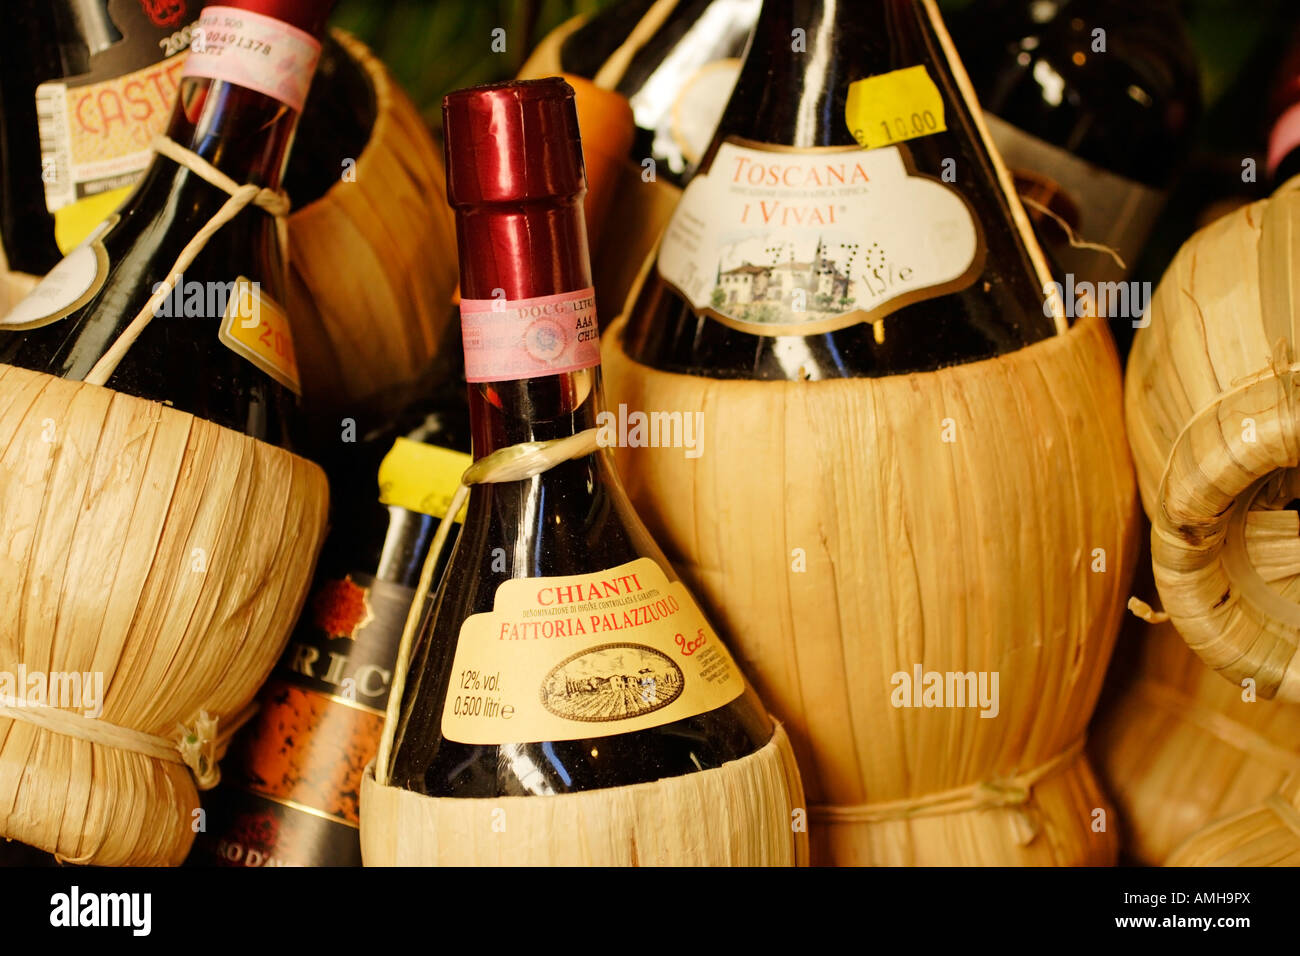 Italian Chianti wine for sale in Florence, Tuscany, Italy